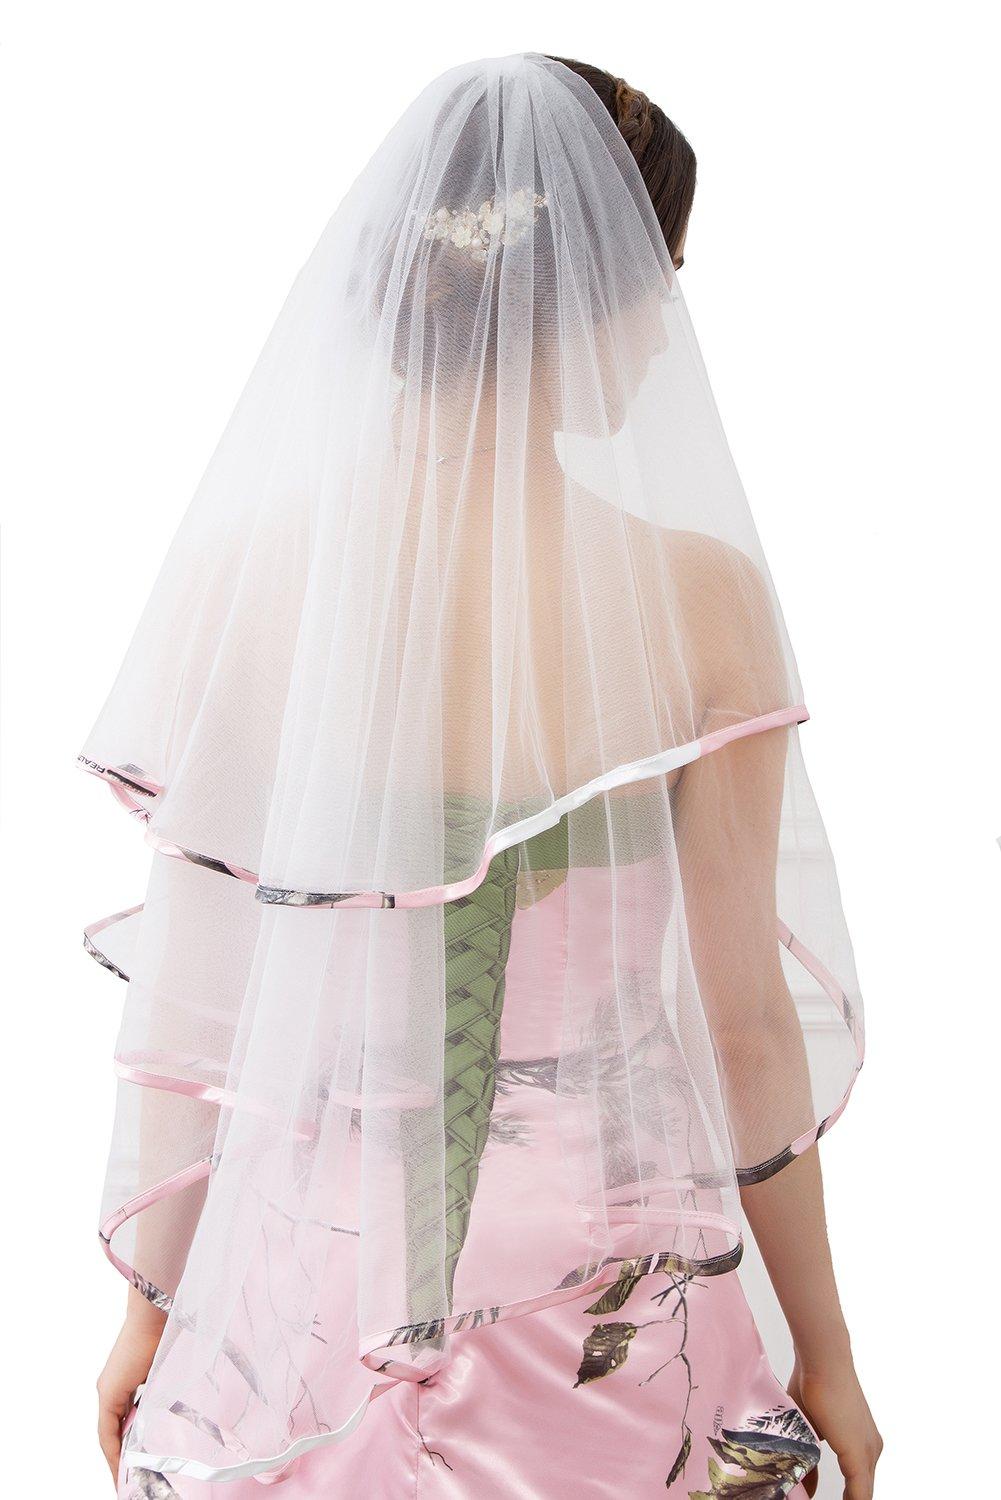 Ilovewedding Bridal Veils Camo Wedding V Buy Online In Botswana At Desertcart,2nd Wedding Dresses Older Bride